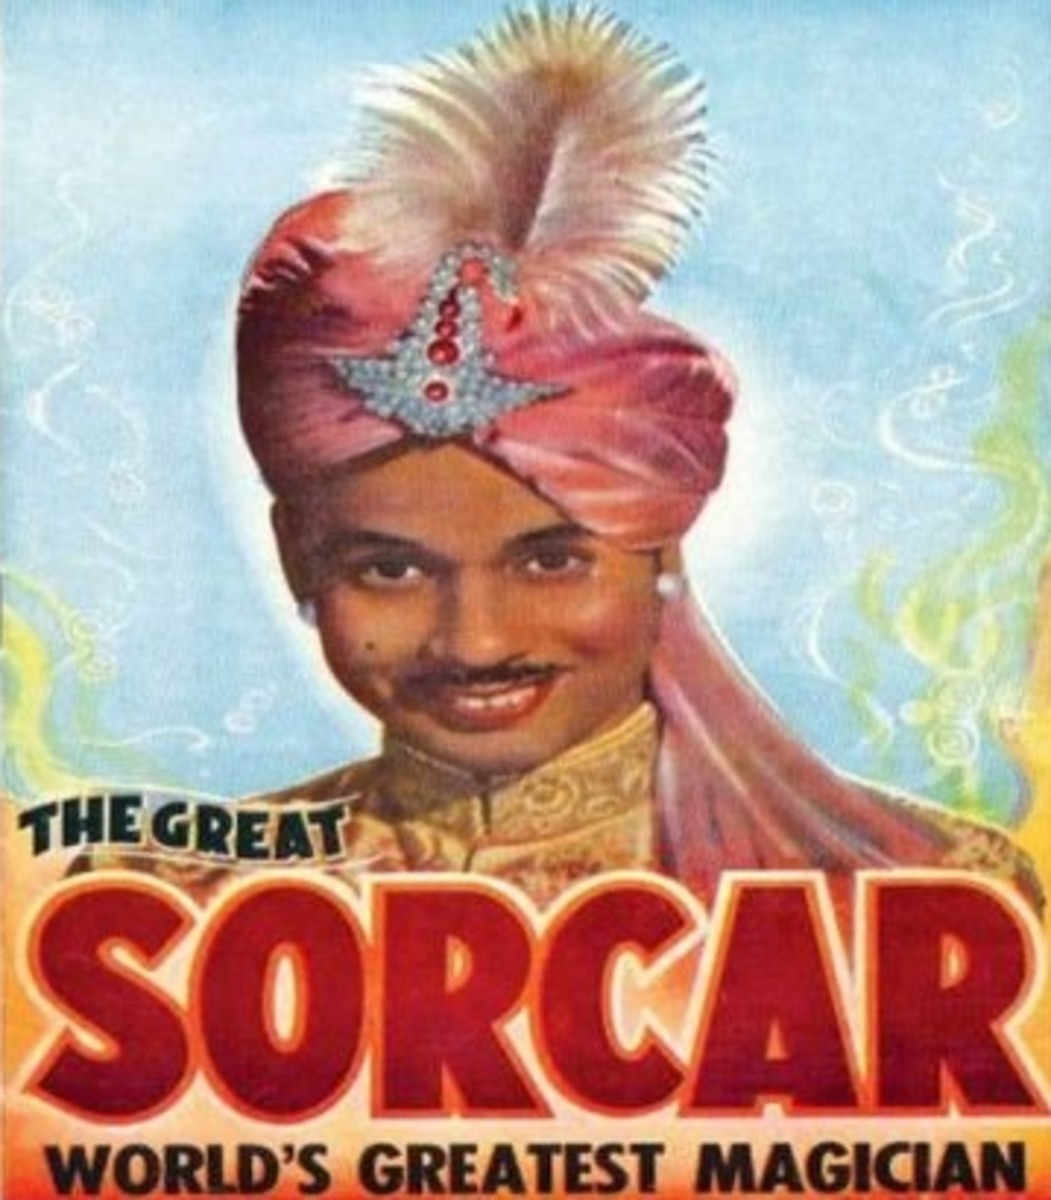 A Retrospective on The Great Sorcar